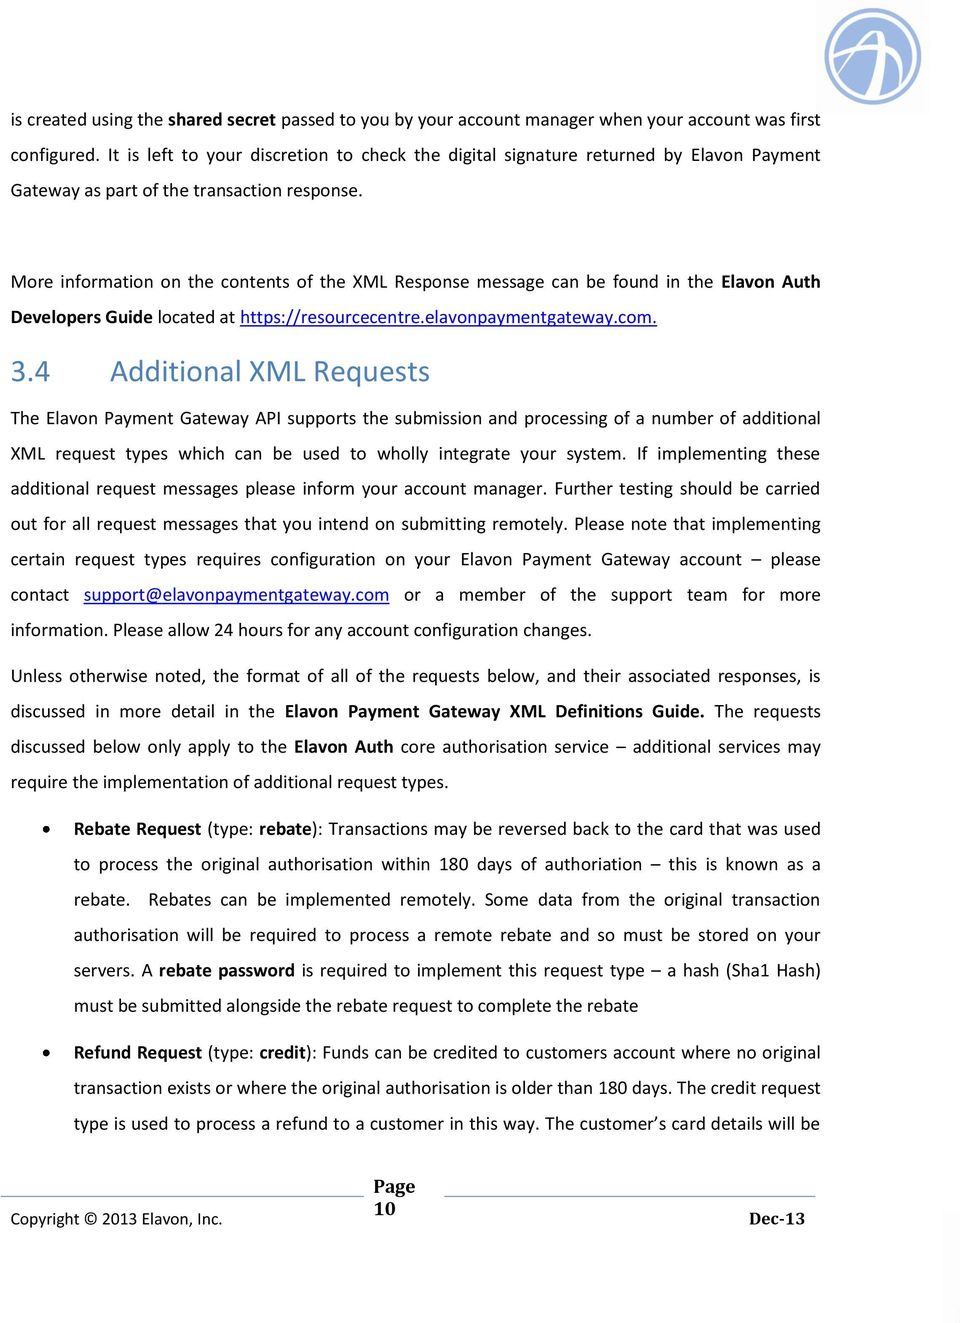 More information on the contents of the XML Response message can be found in the Elavon Auth Developers Guide located at https://resourcecentre.elavonpaymentgateway.com. 3.